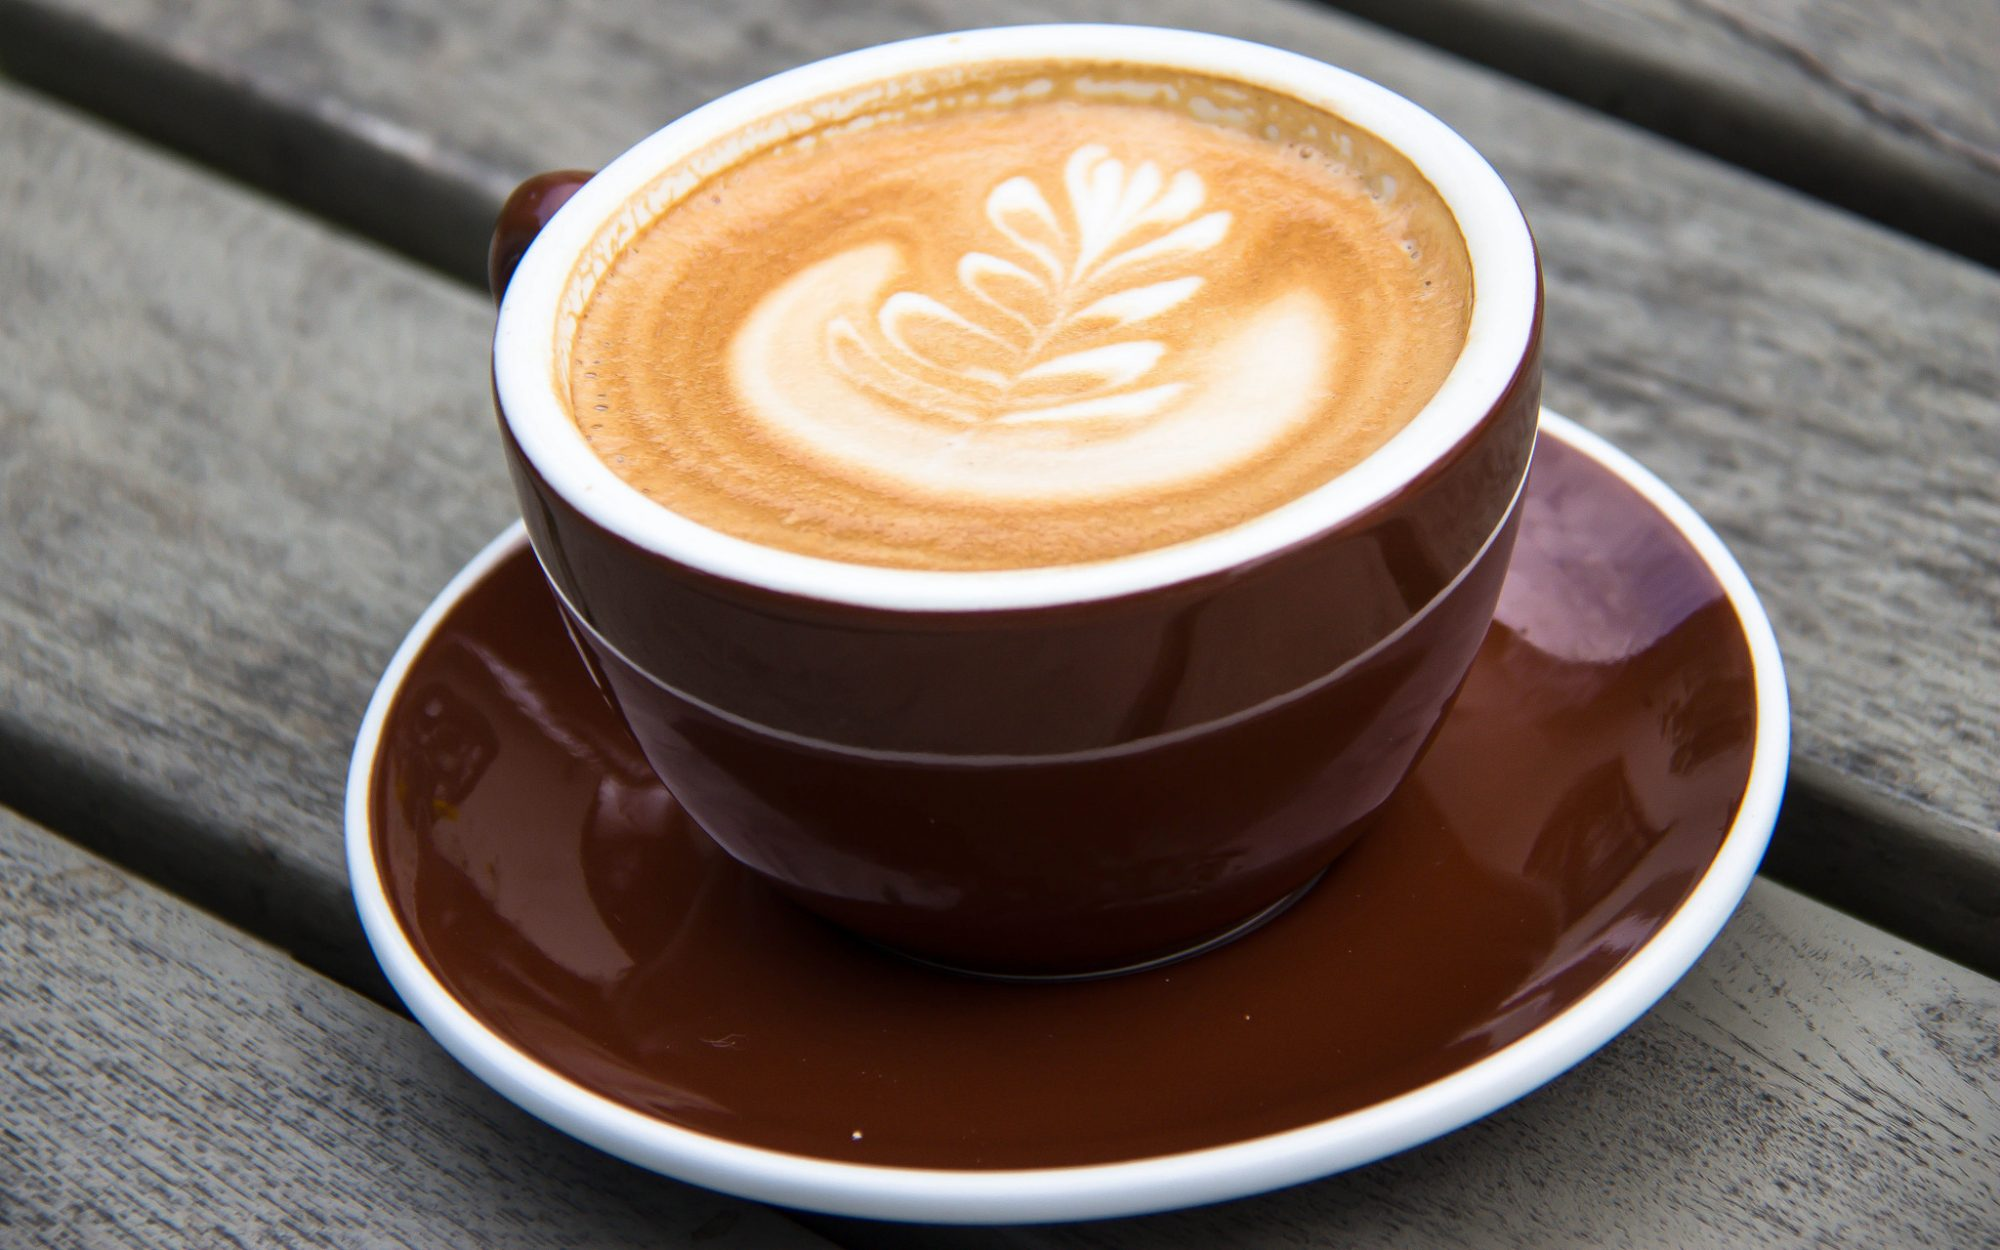 EC: Why Are There So Many Coffee Shops in Clothing Stores?